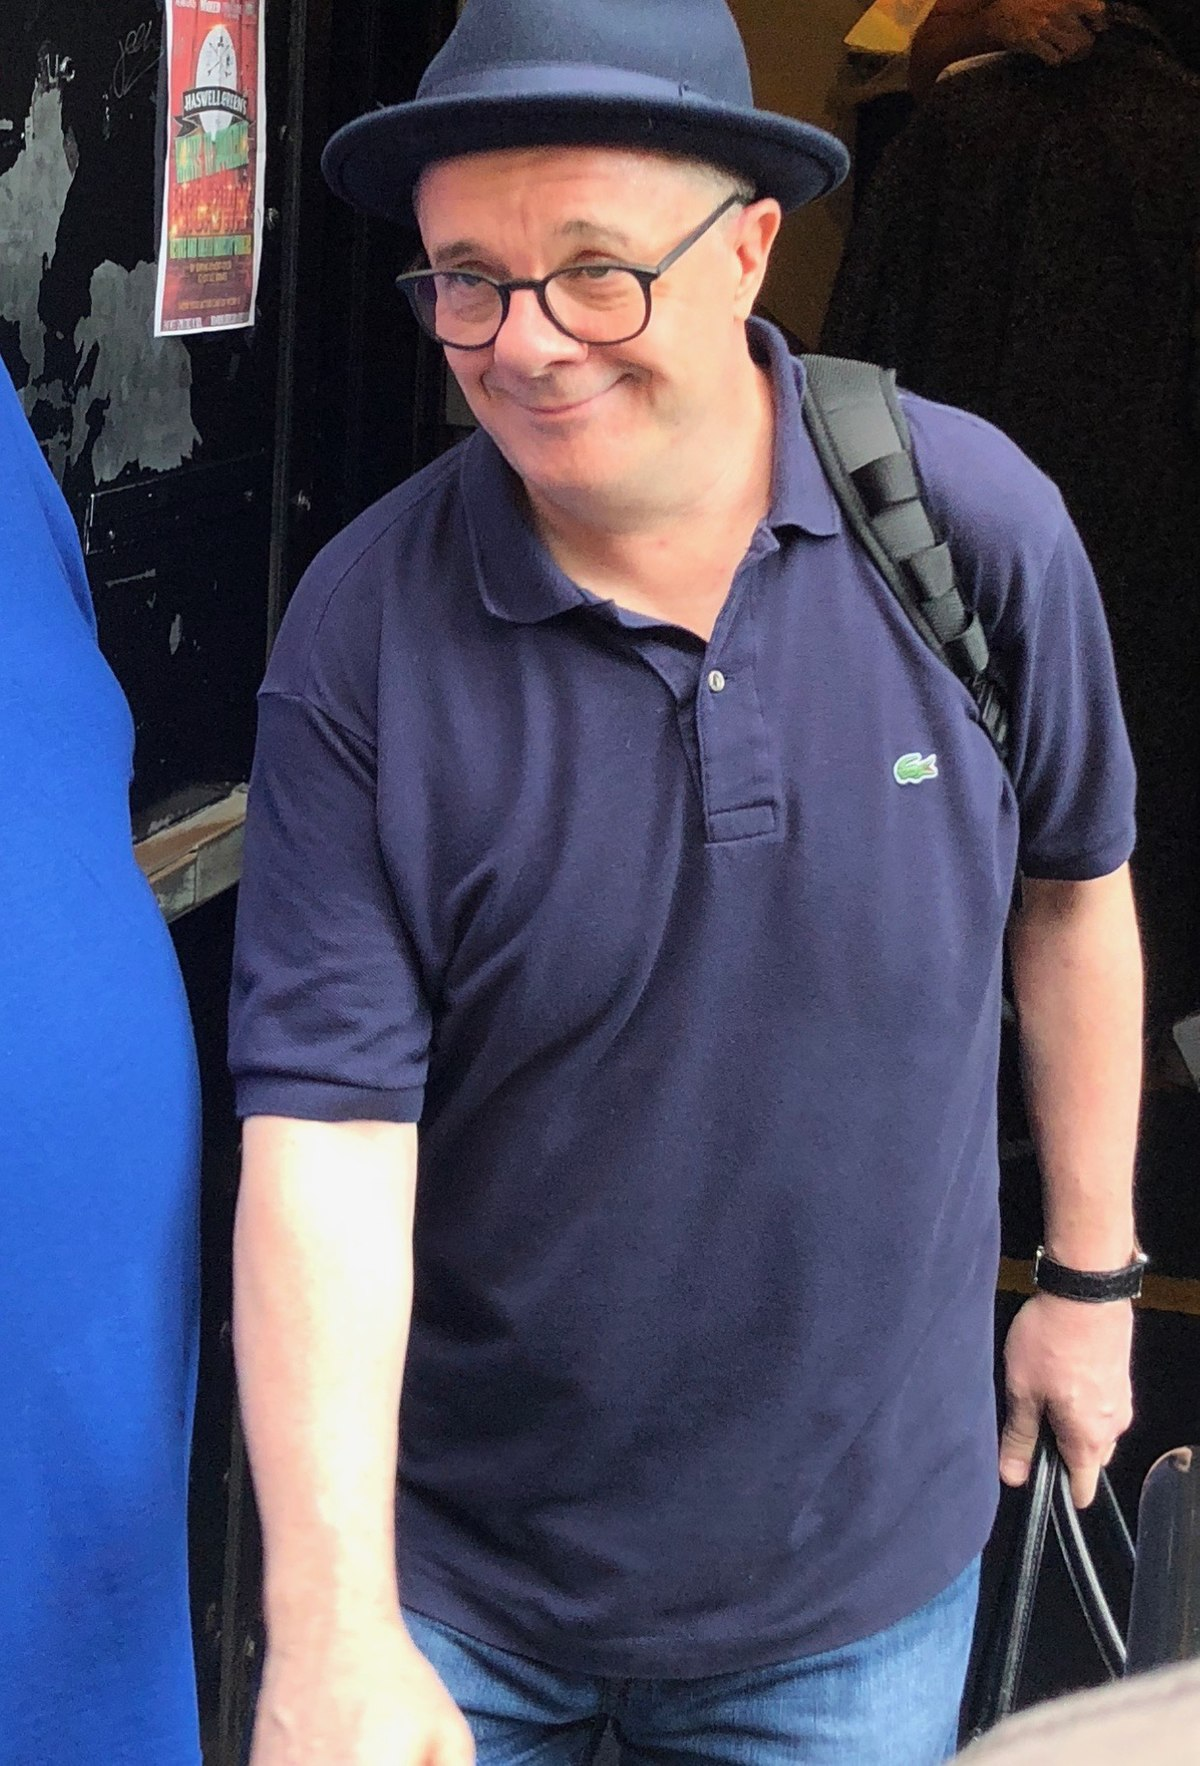 Nathan Lane - Wikipedia